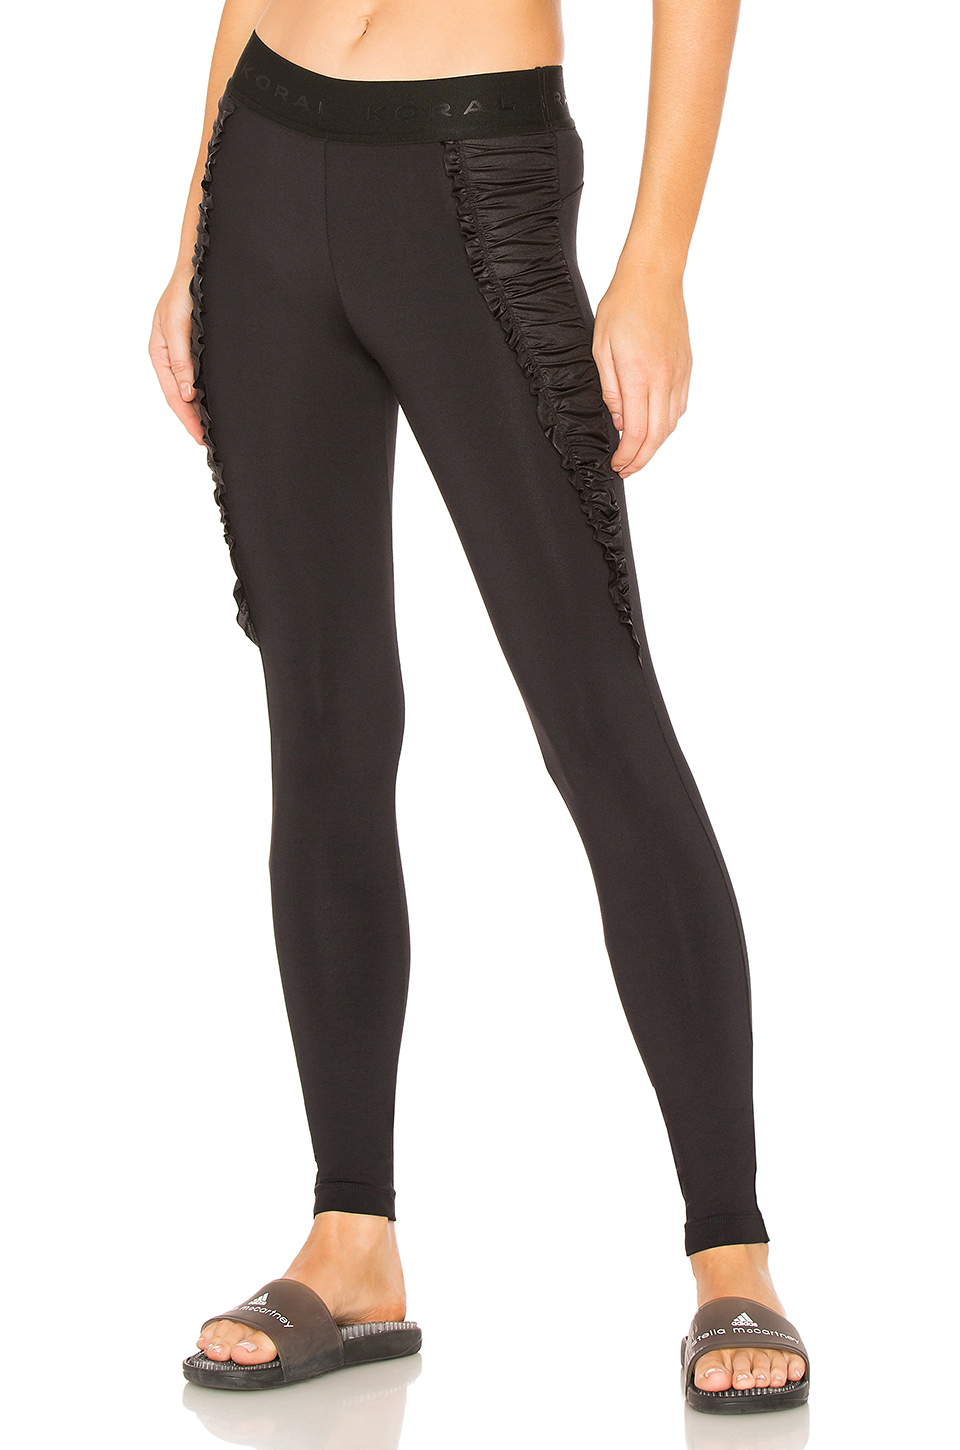 KORAL Lord Legging in Black